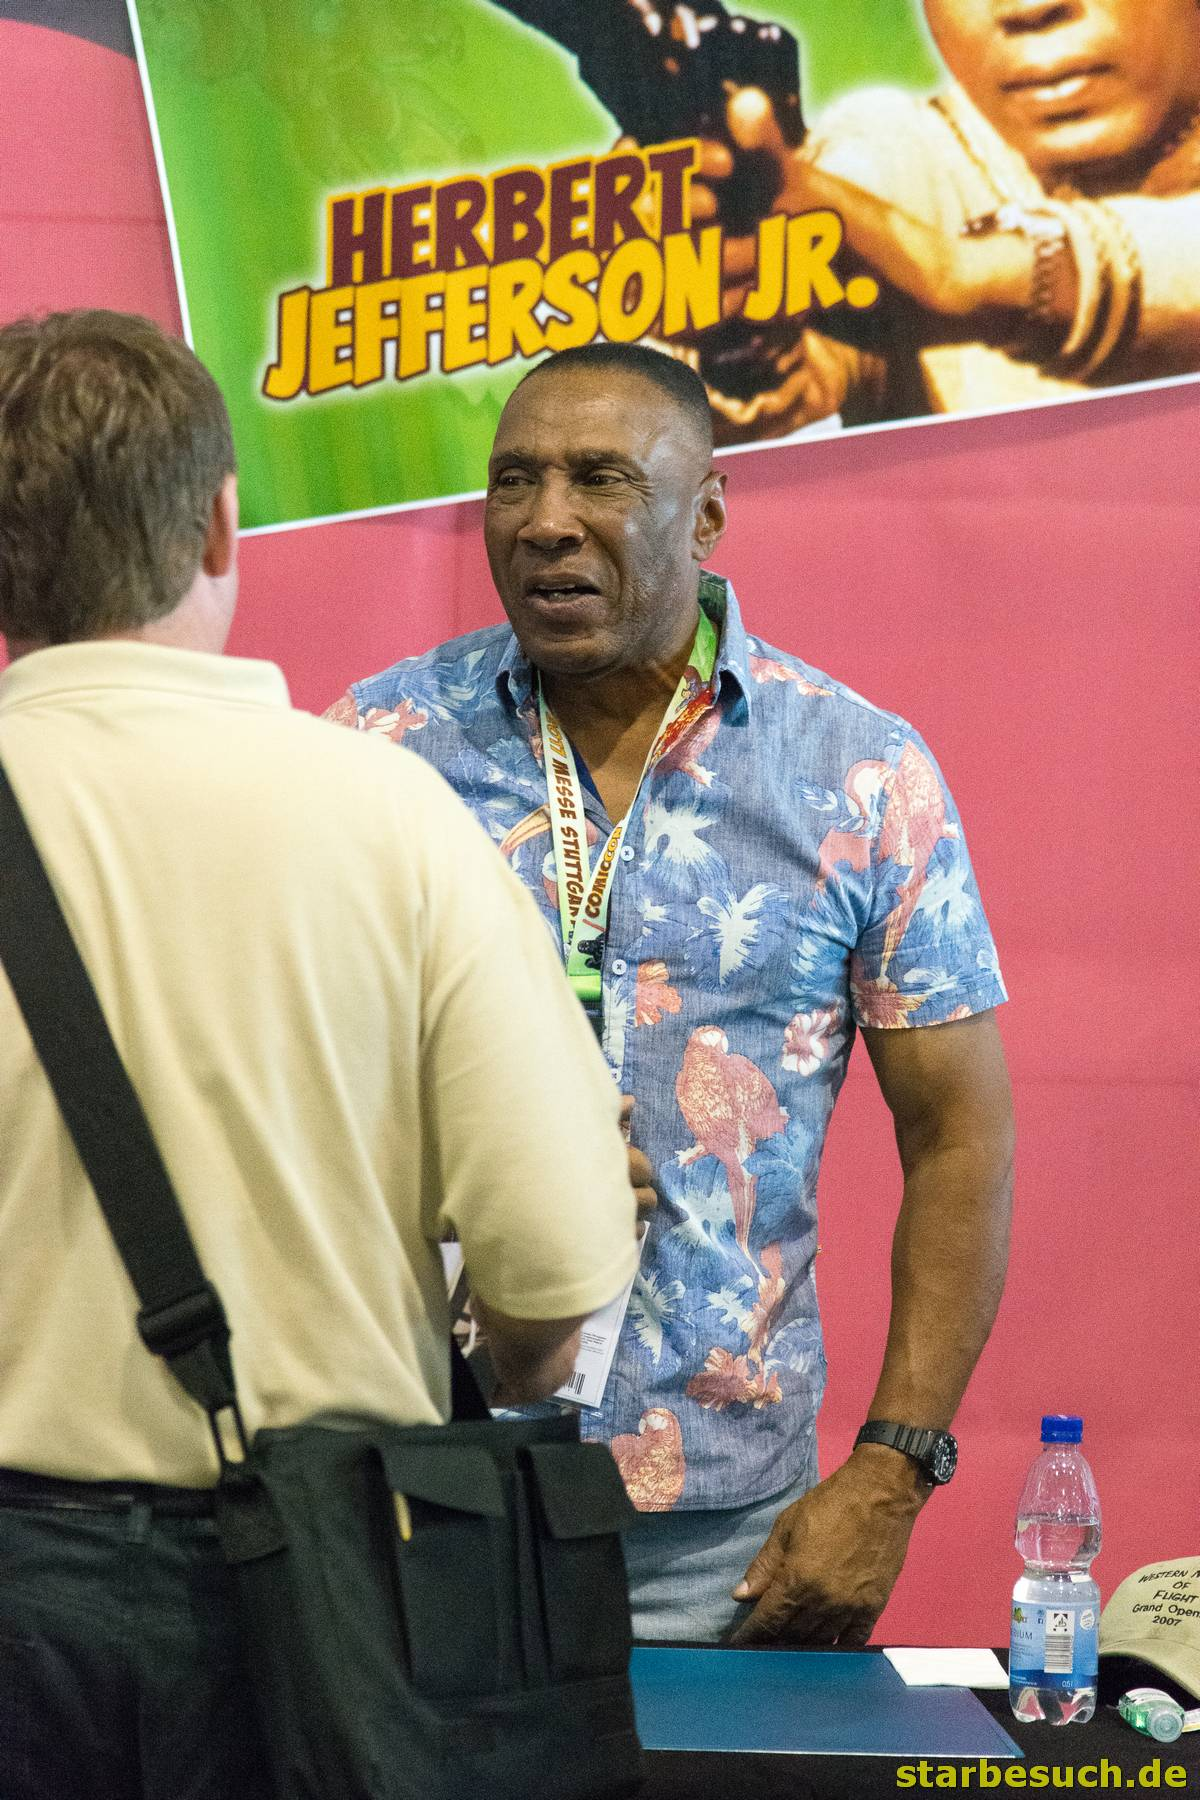 July 1st 2017. Stuttgart, Germany. Herbert Jefferson, Jr (A-Team) meeting a fan at Comic Con Stuttgart